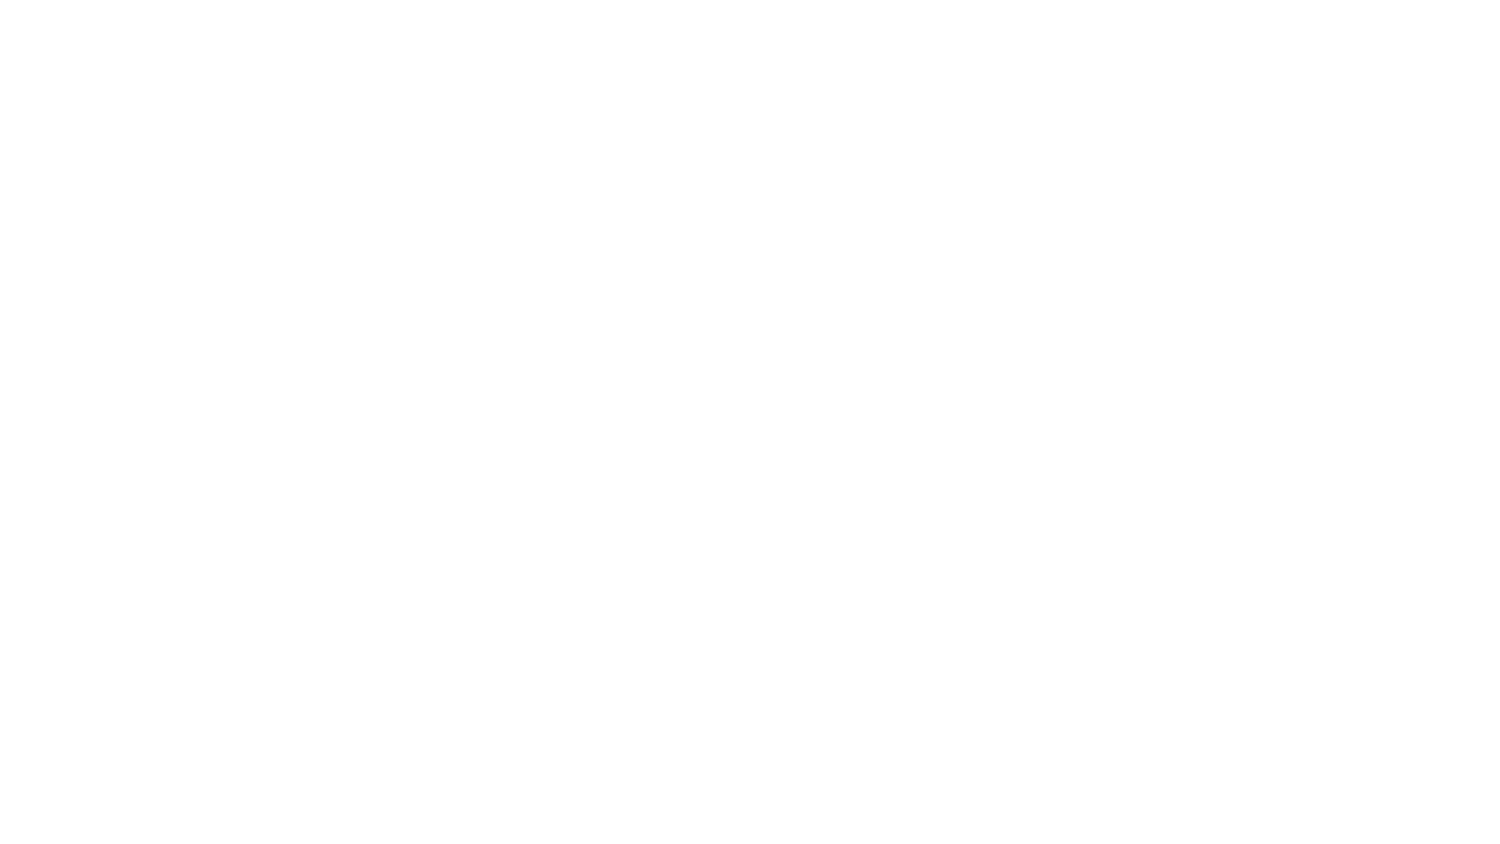 Dean Lewis - Commercial and Architectural Photographer